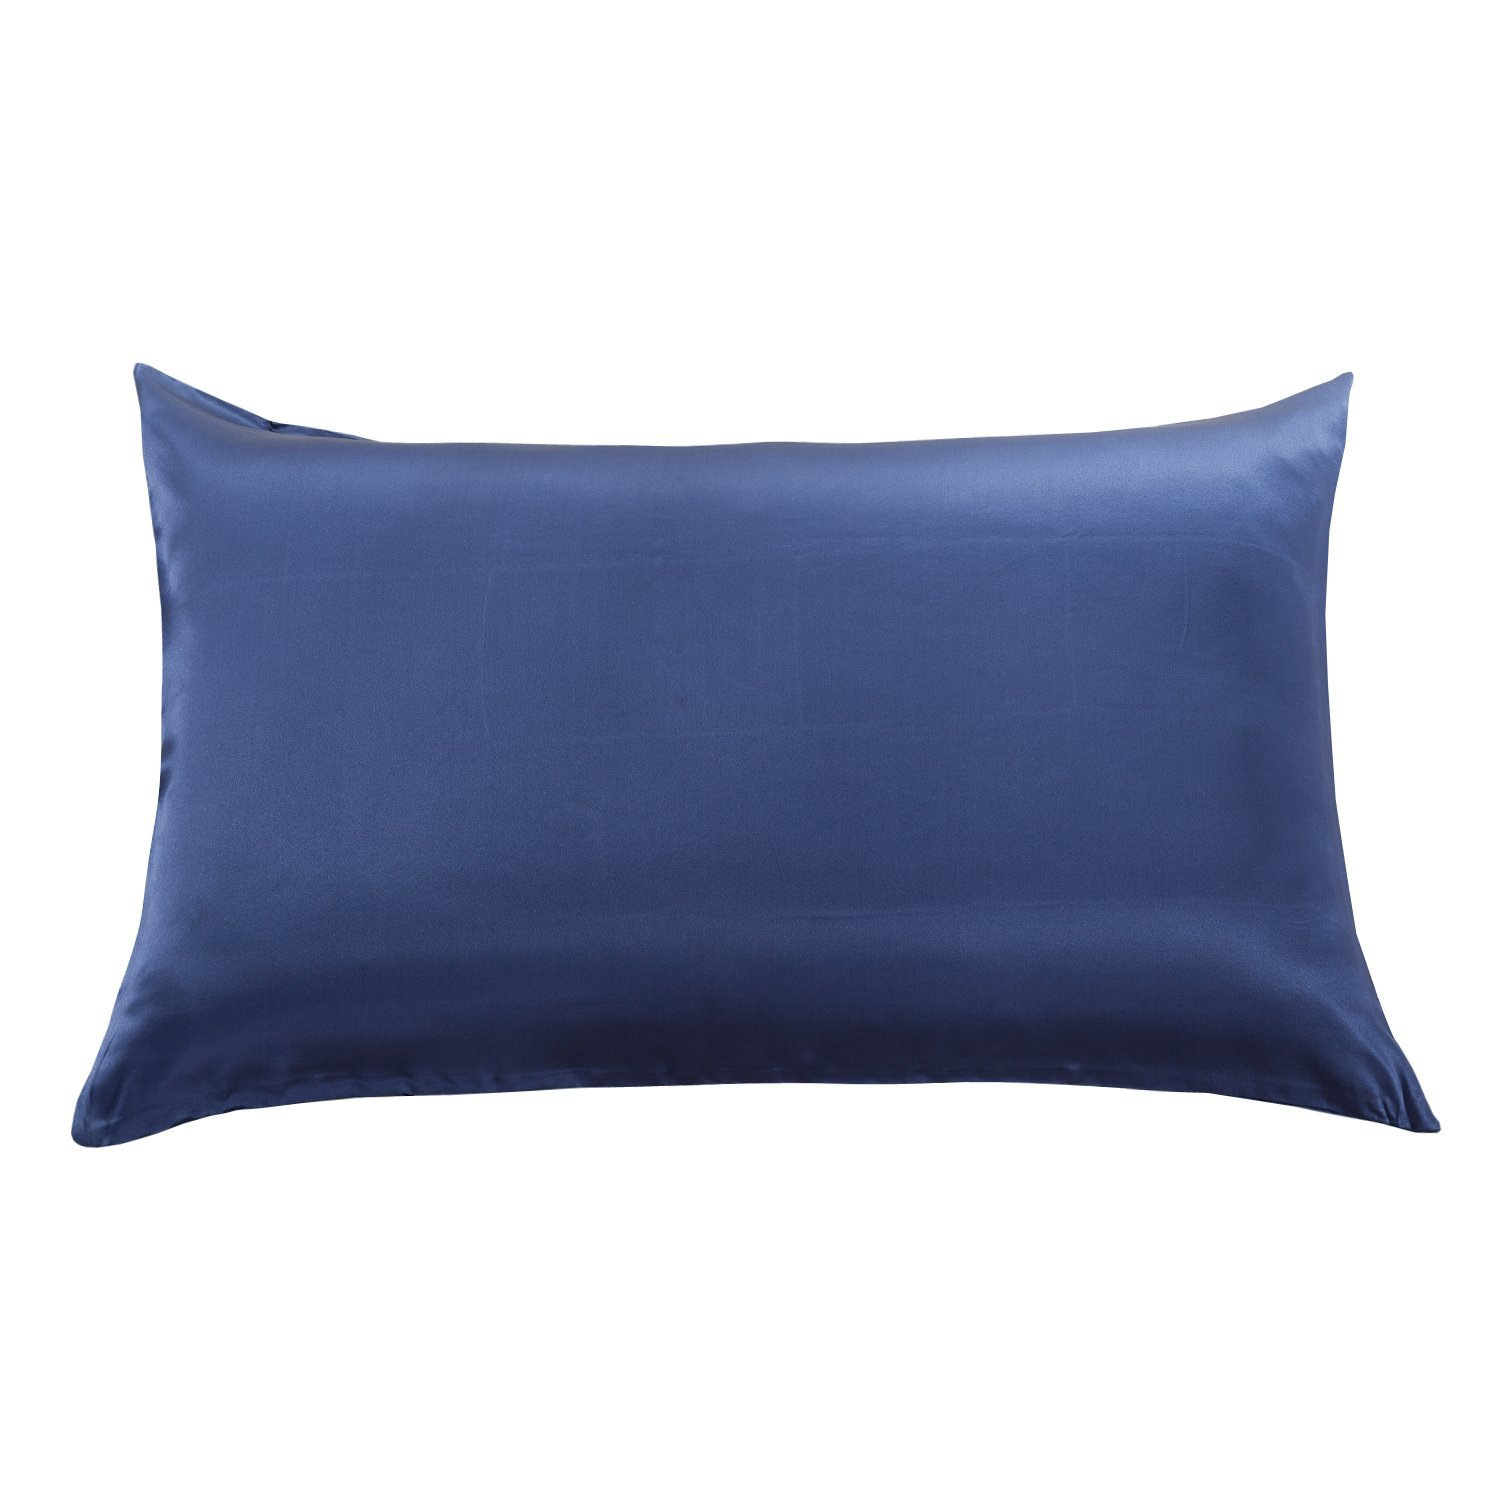 Orose 22mm Luxury Mulberry Silk Pillowcase, Good for Hair and Facial Beauty, Prevent from Wrinkle and Allergy, 100% Silk on Both Sides, Gift Wrap,1Pc (Standard, navy blue)